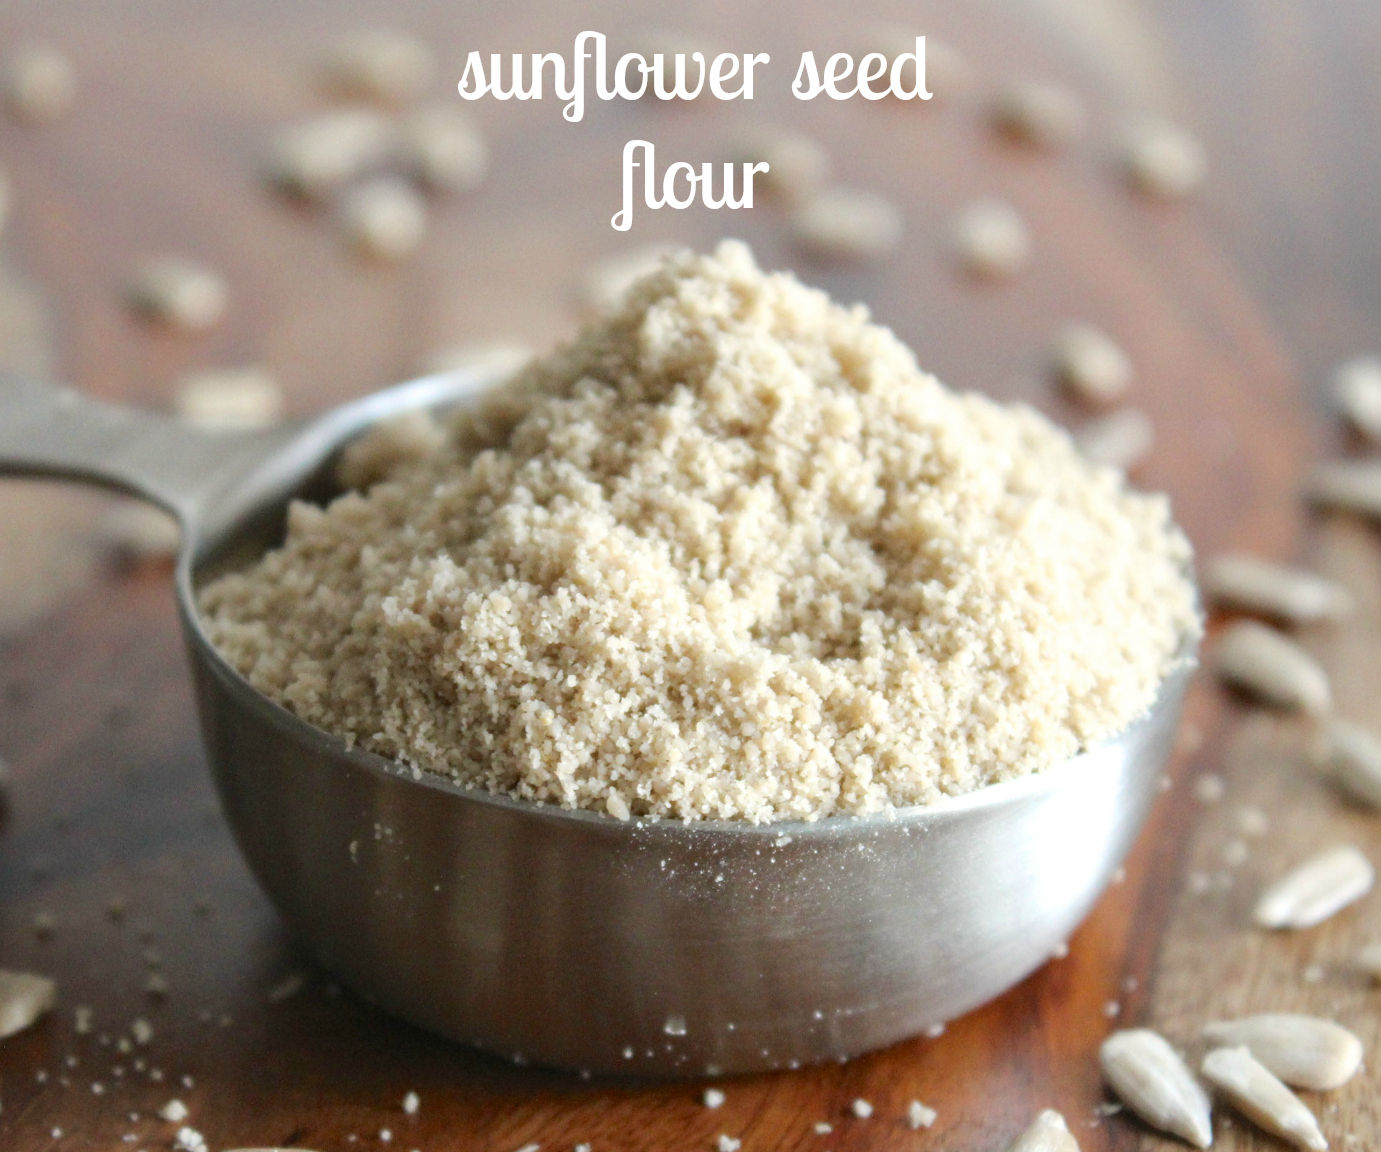 raw sunflower seed flour